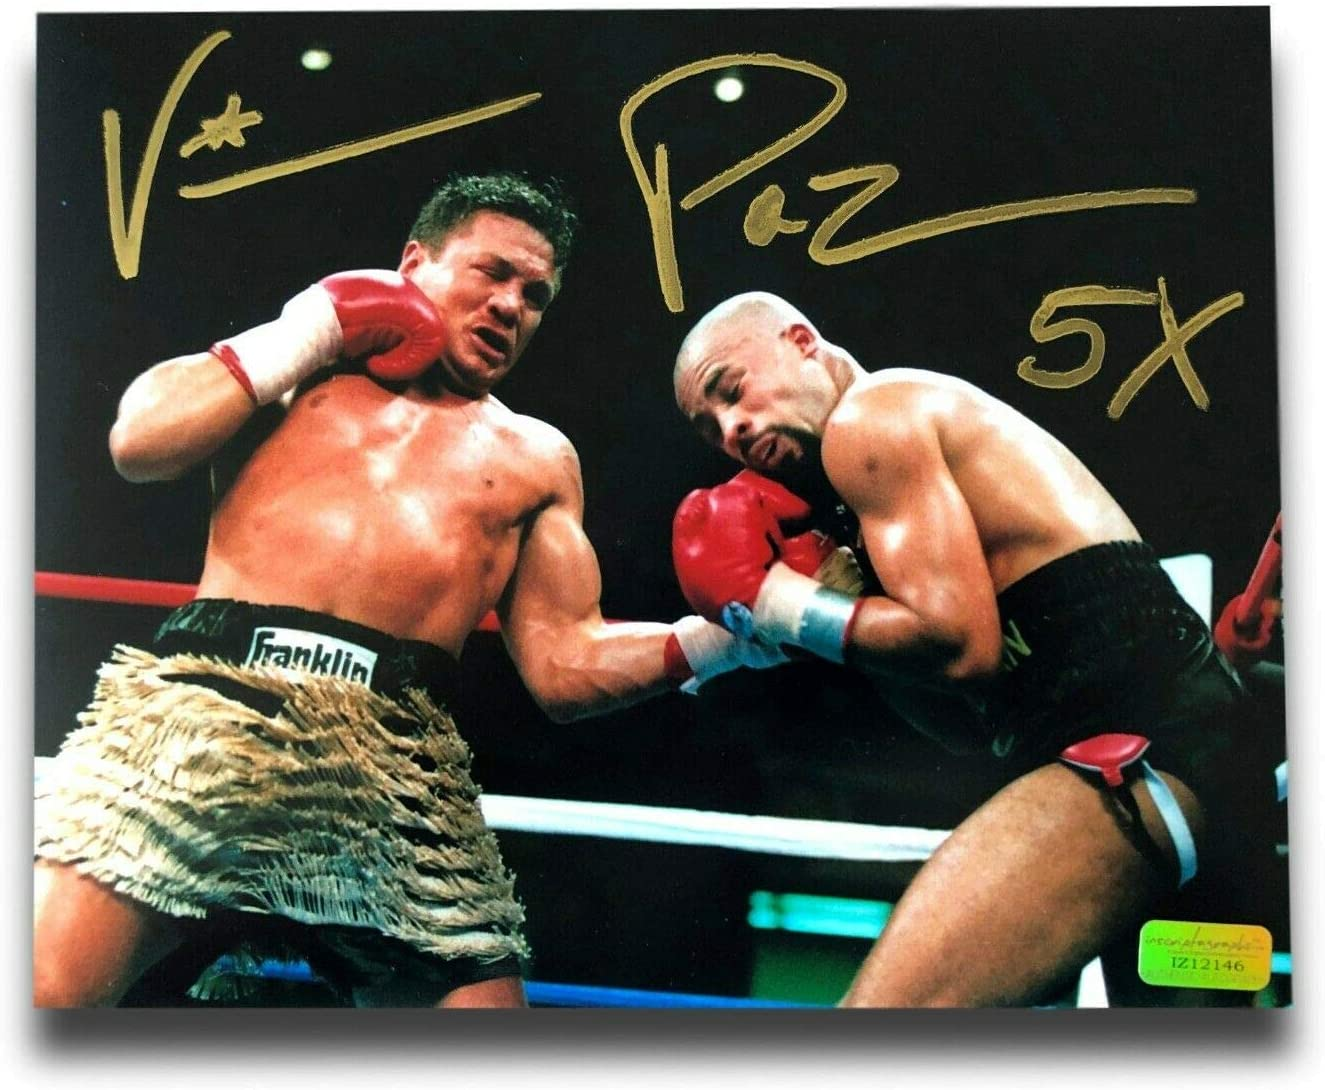 B07WG8MSZD Vinny Paz Signed 8x10 Photo COA Inscriptagraphs Boxing Autograph Pazienza 71OJetw6PAL